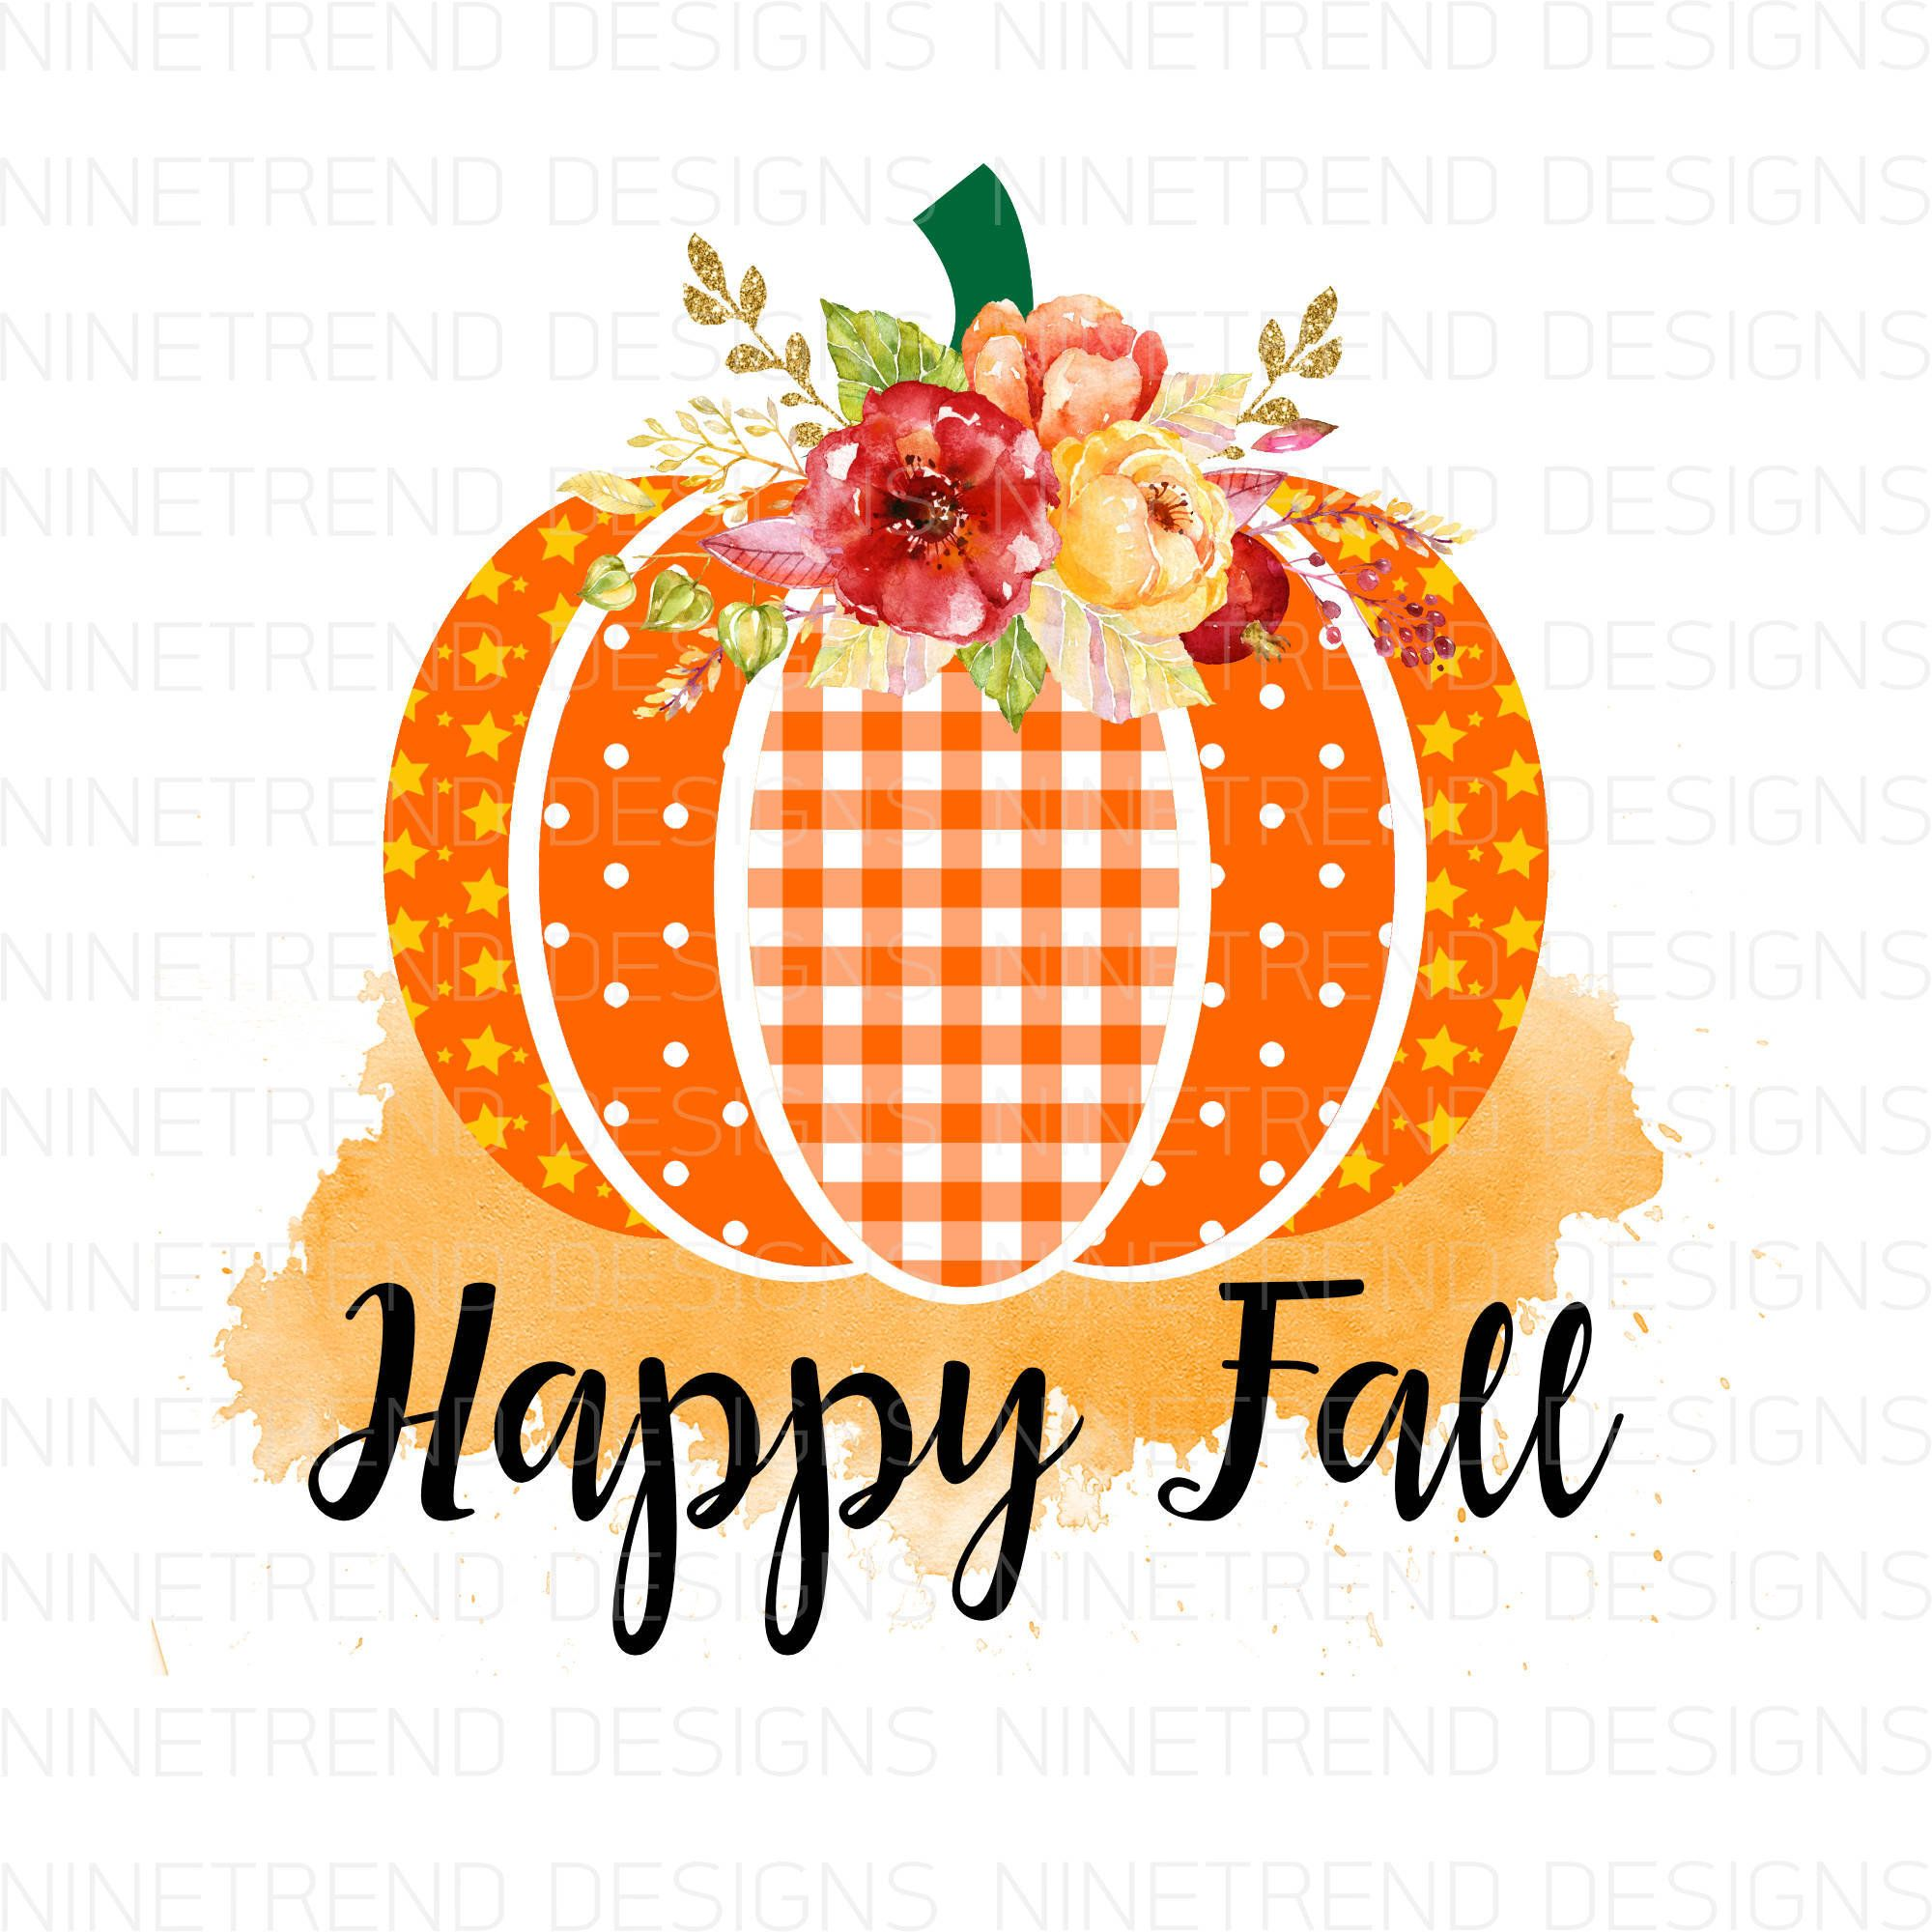 Happy Fall Pngfall Sublimation Designs Downloadspumpkin Png Etsy In 2021 Happy Fall Happy Thanksgiving Wallpaper Fall Wallpaper